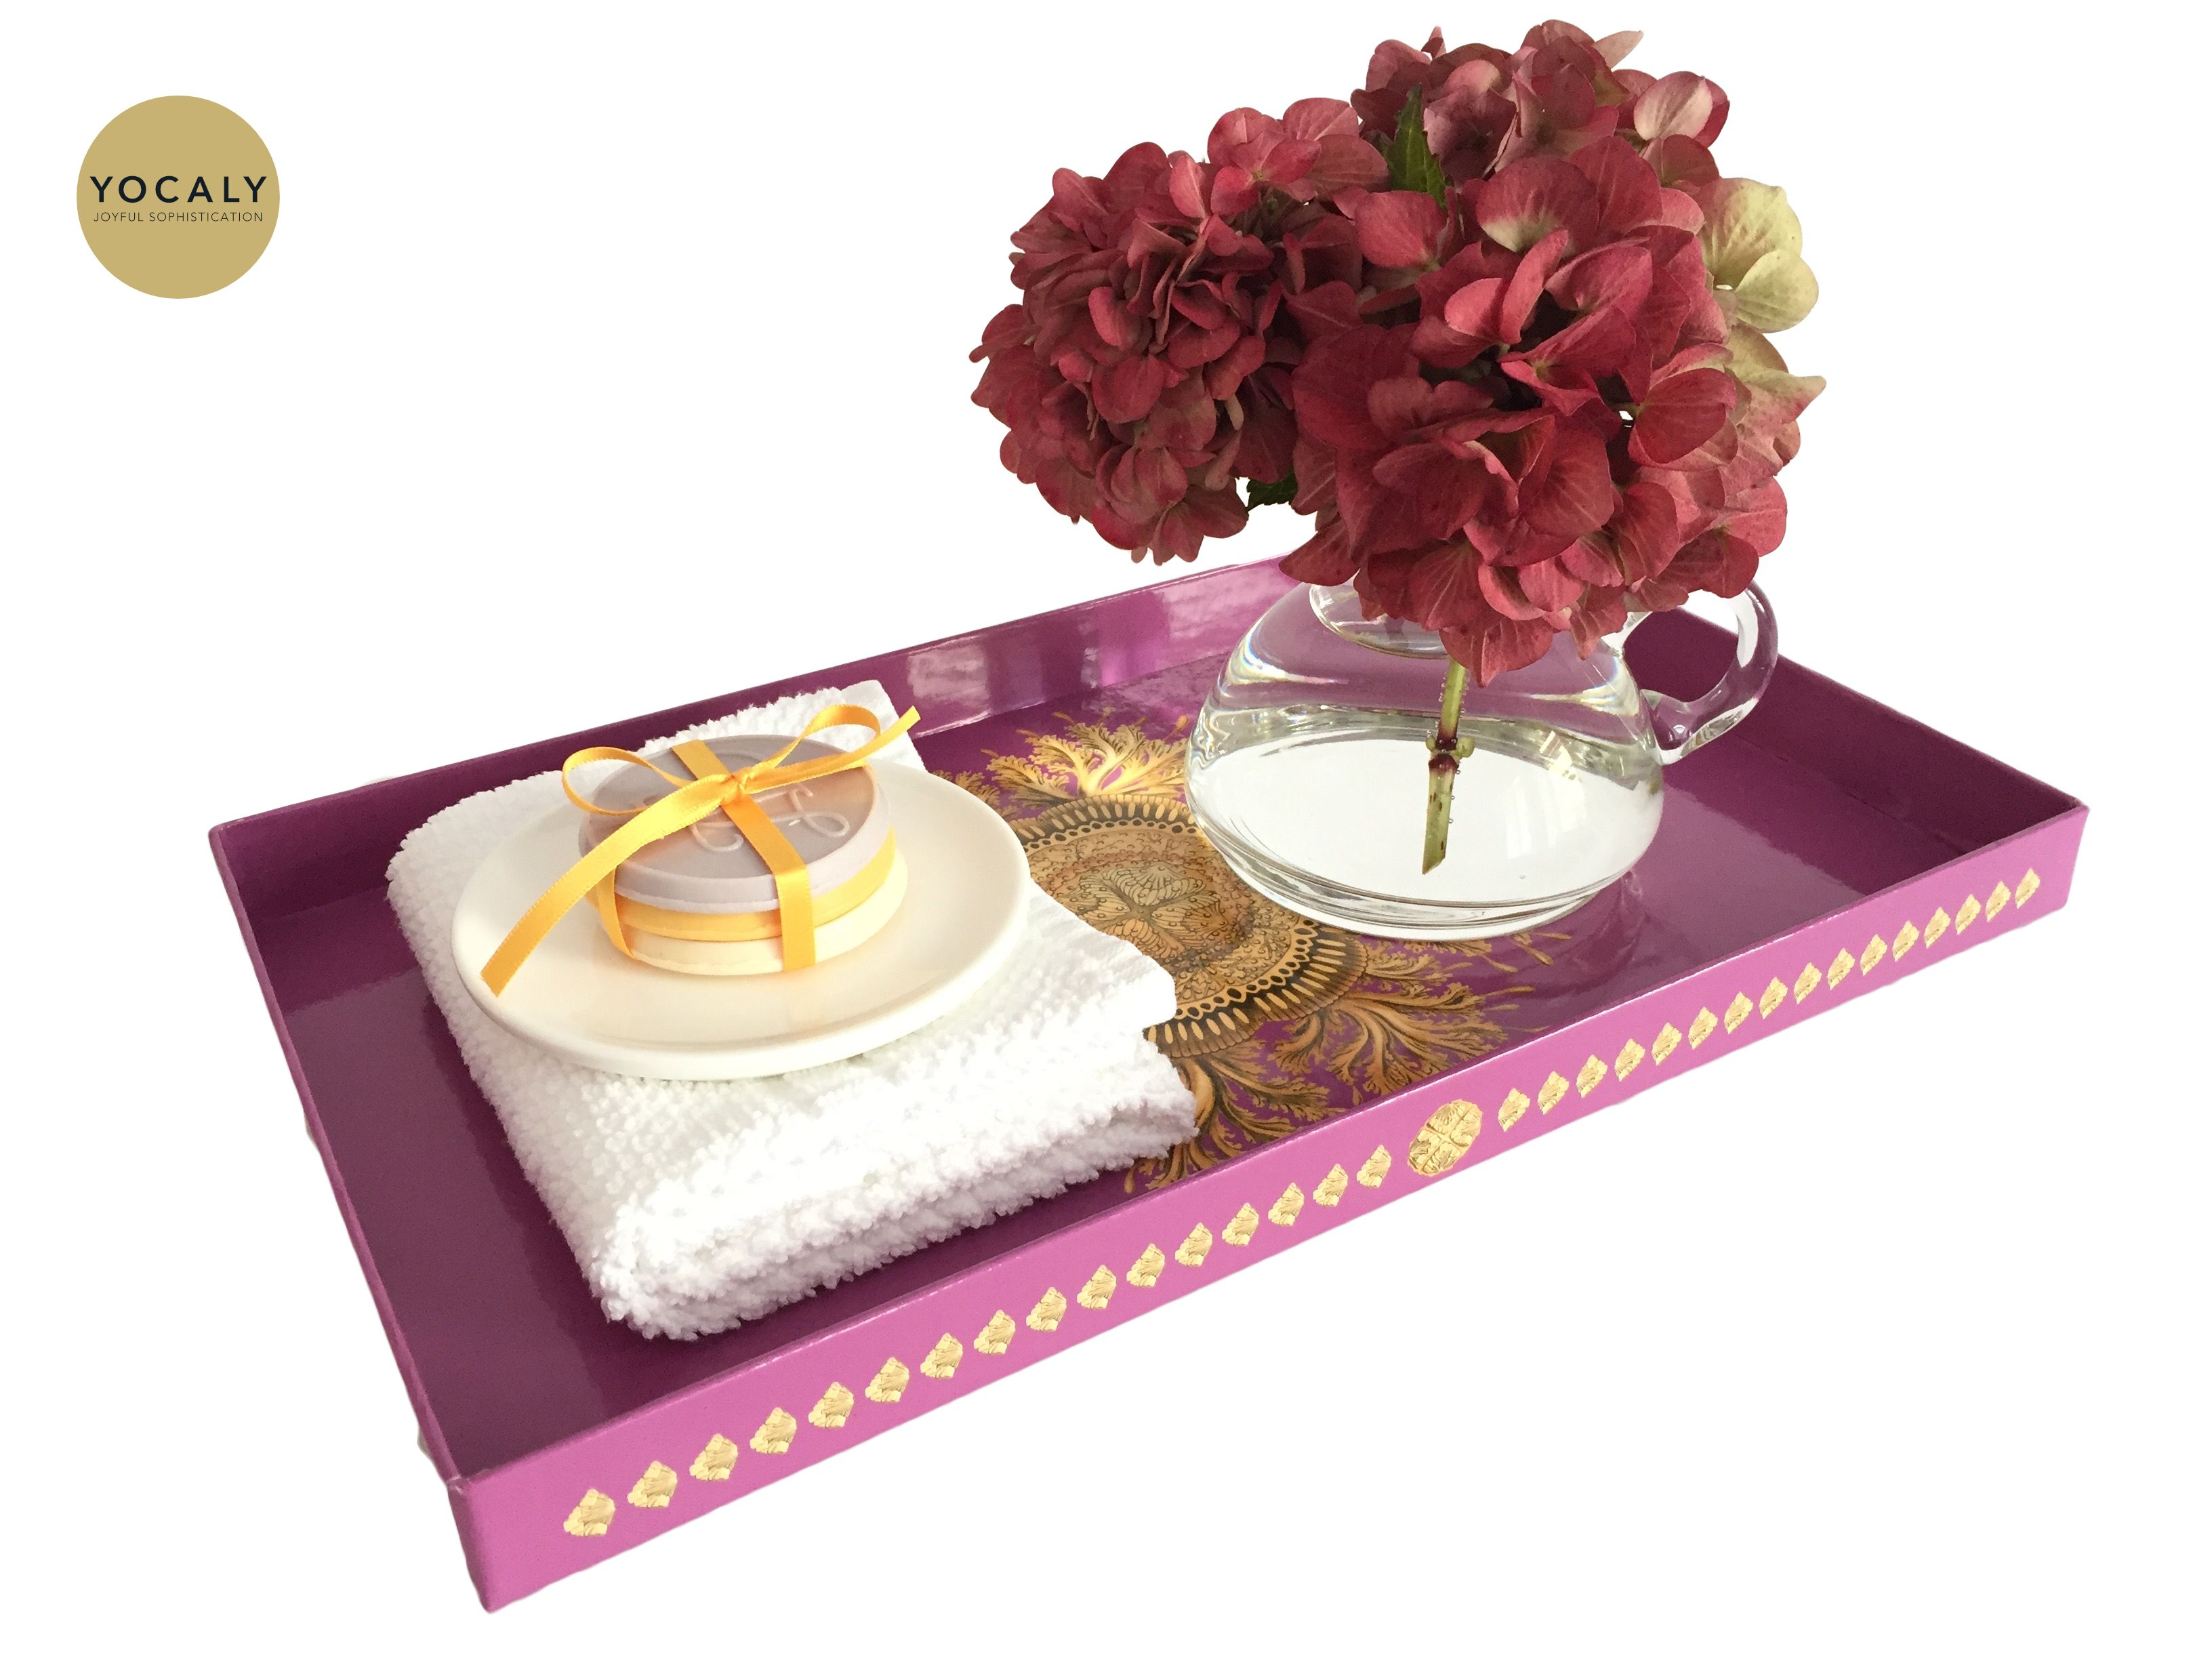 Decorative Tray Extraordinary Pink Decorative Tray  Decorative Trays Trays And Bathroom Shop Decorating Inspiration